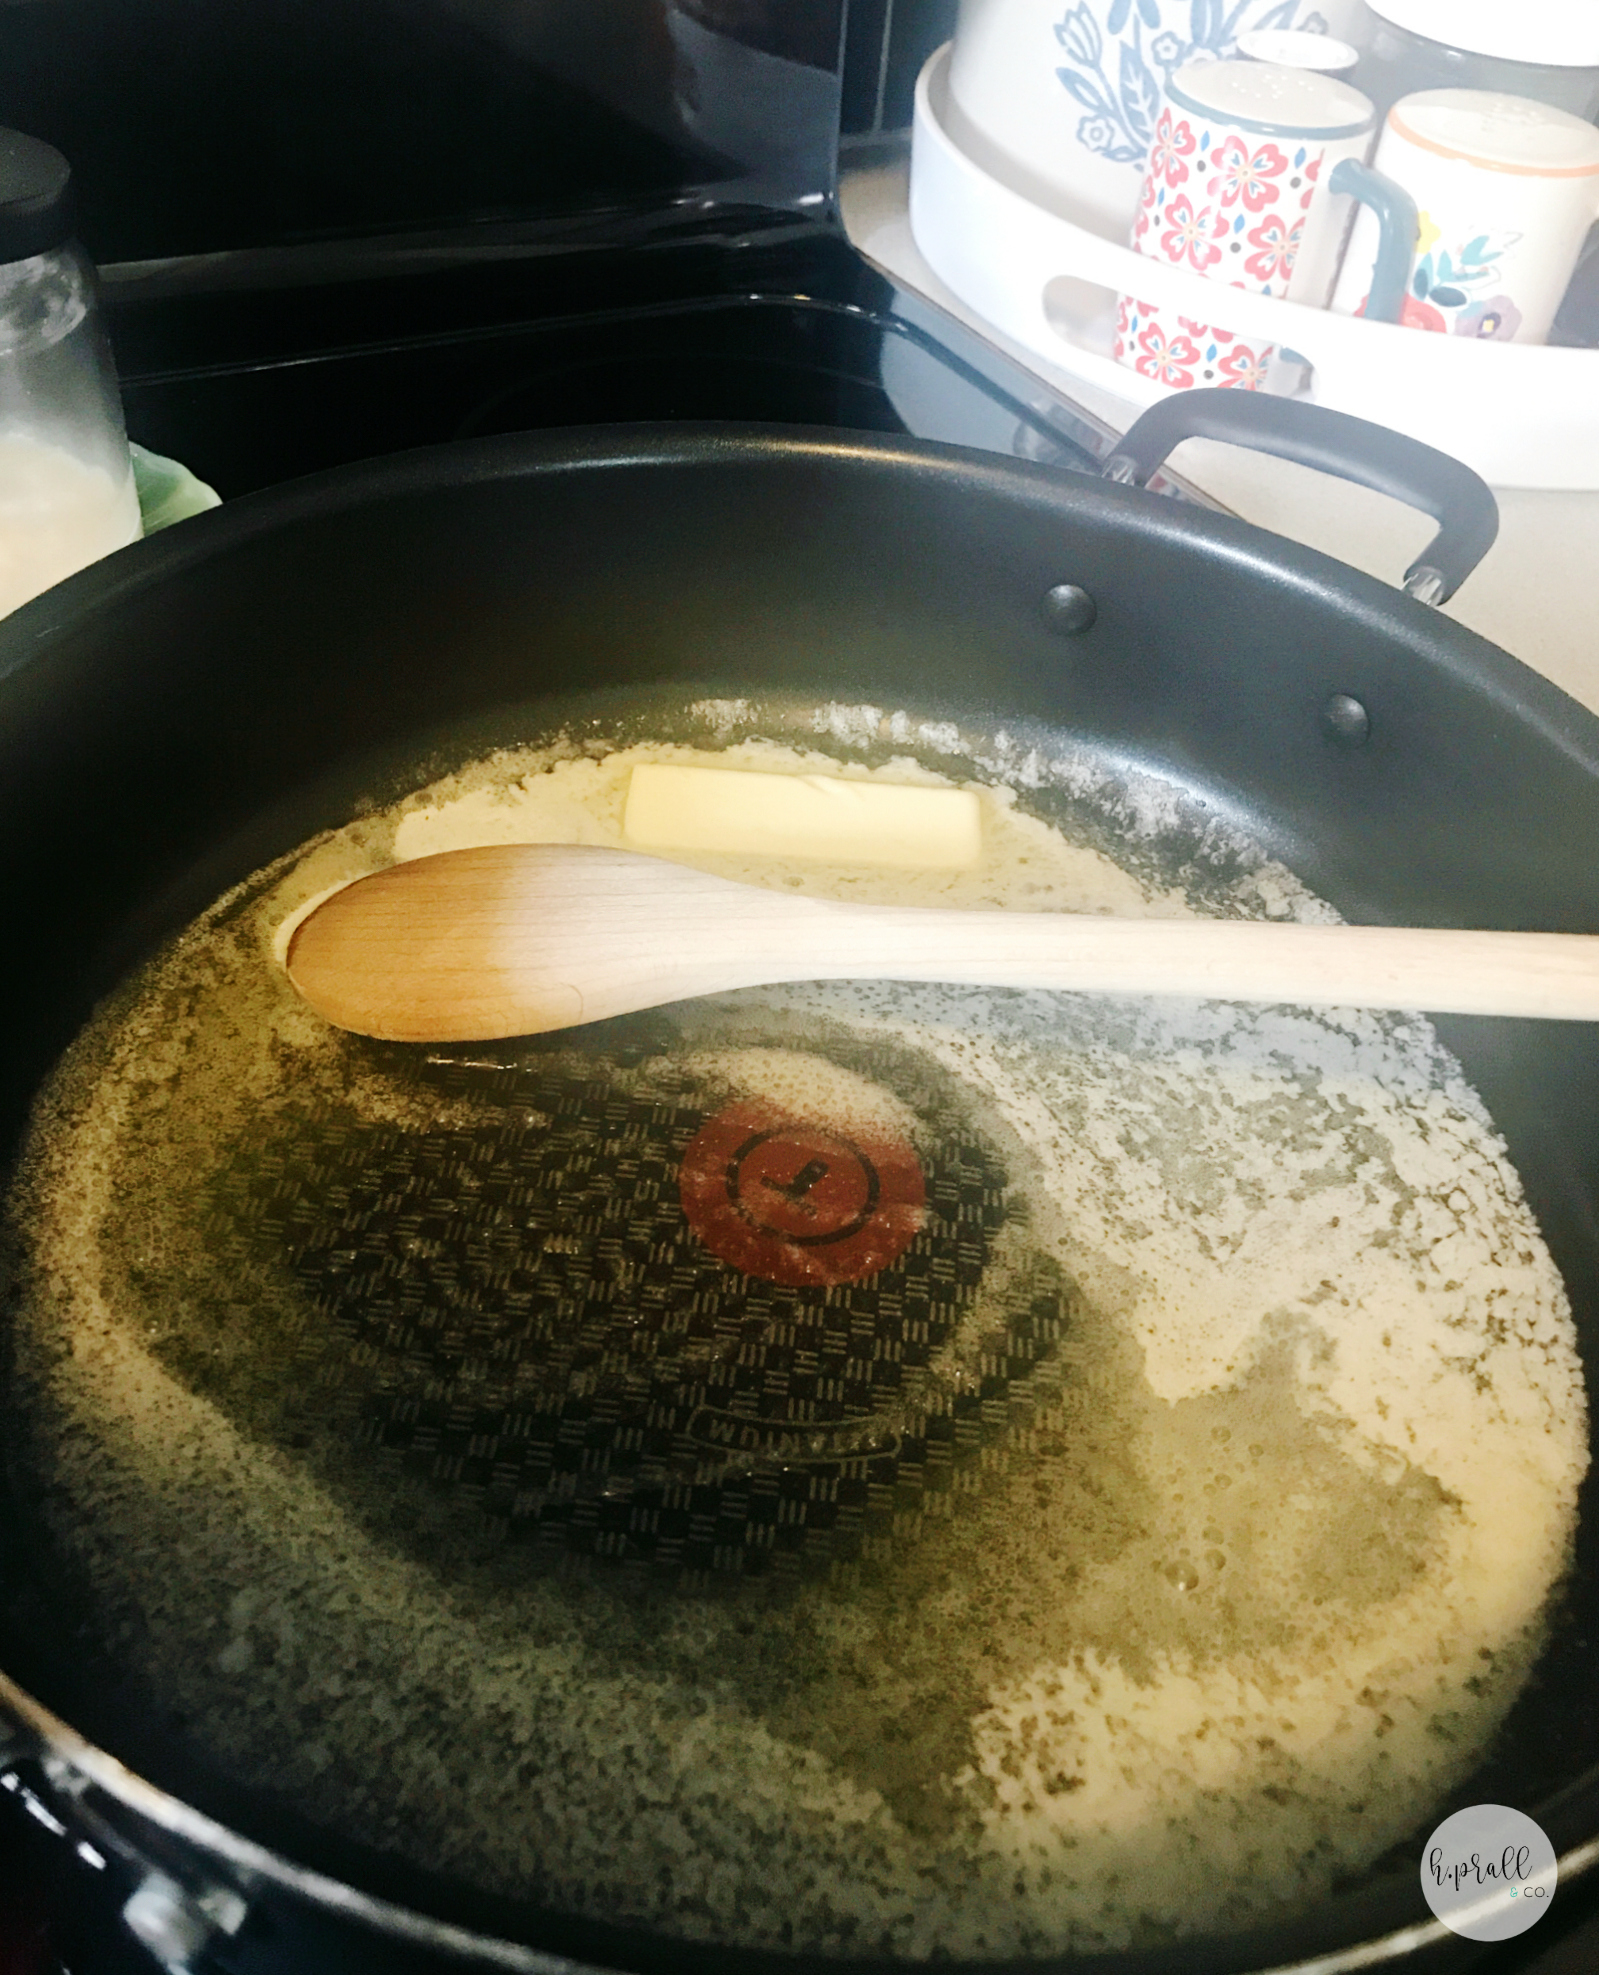 Melting butter in a skillet for Turkey Pot Pie by  H.Prall & Co.